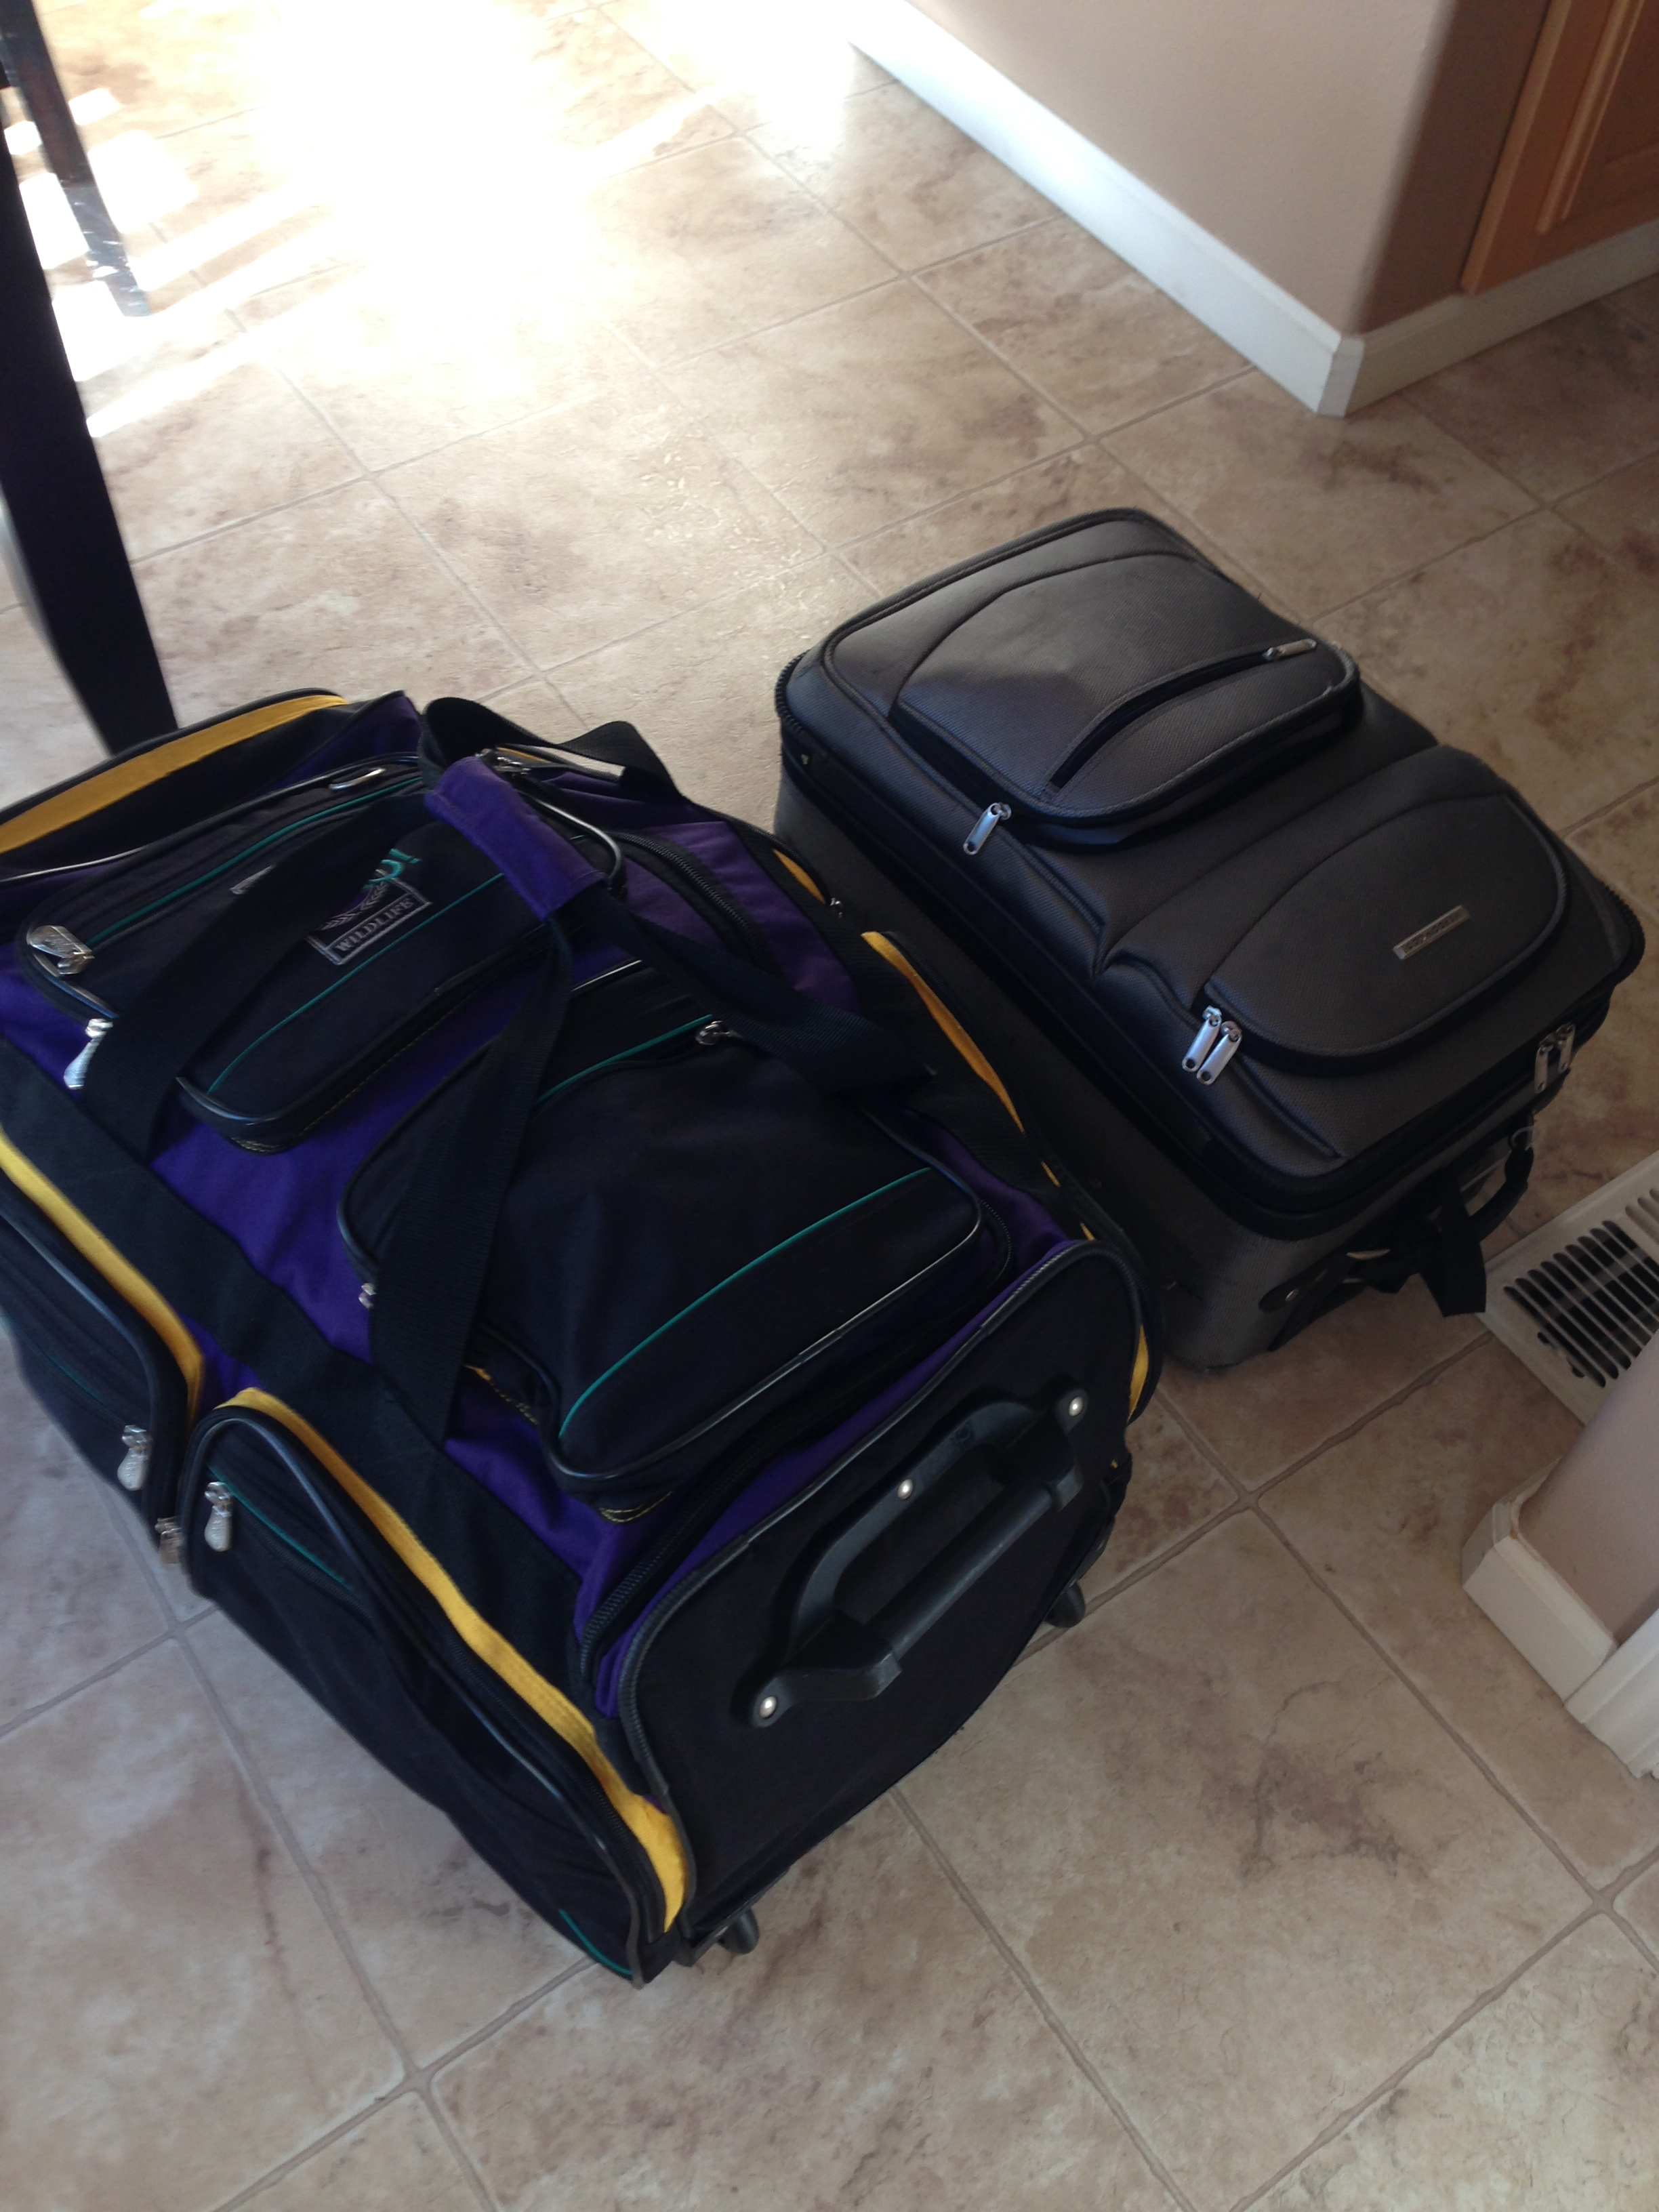 The bag on the left had my athletic gear. The bag on the right had everything else I needed for a 3 week trip.